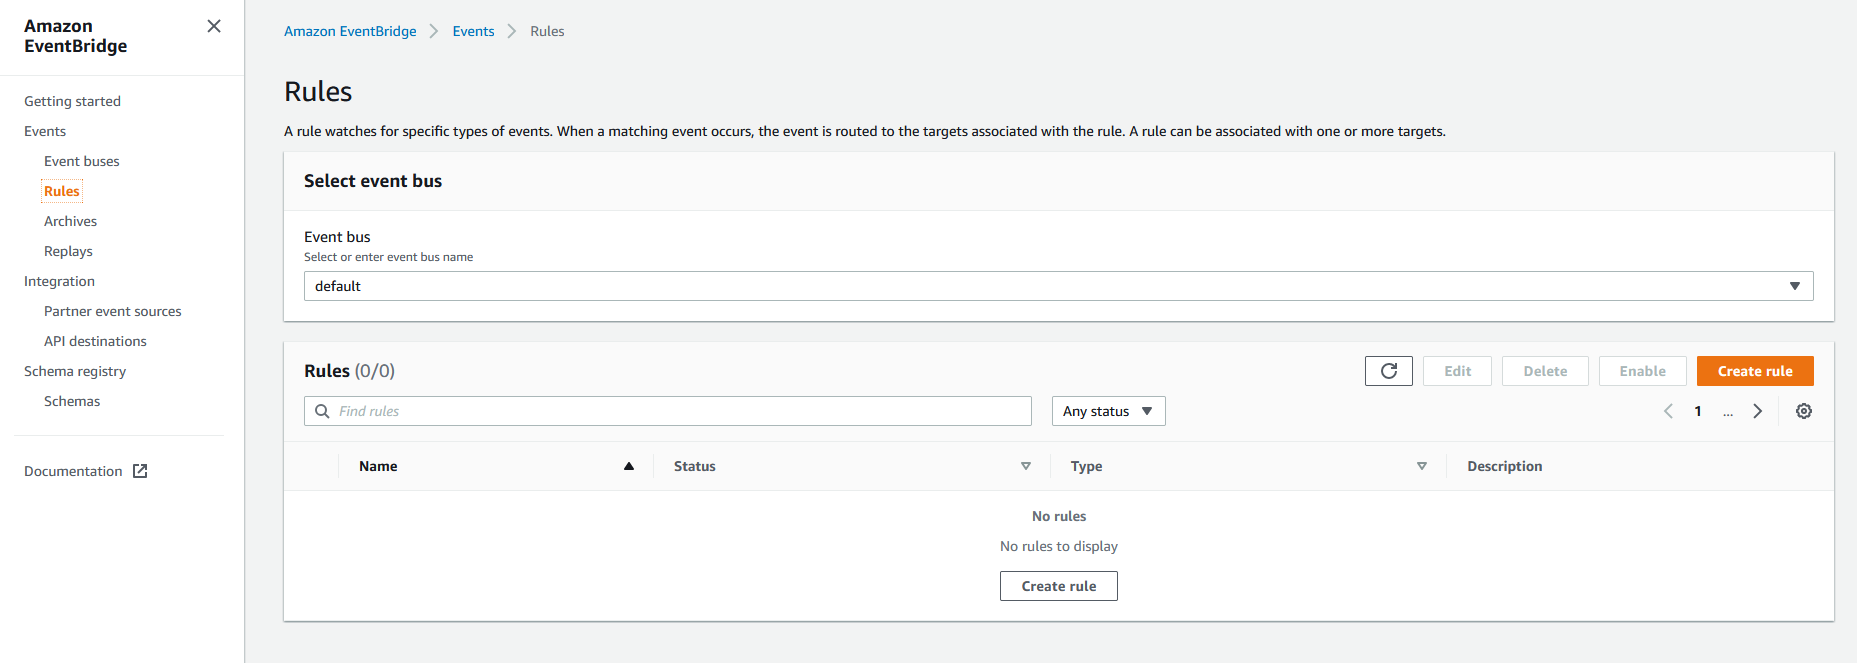 AWS EventBridge rules page with no rules currently created.